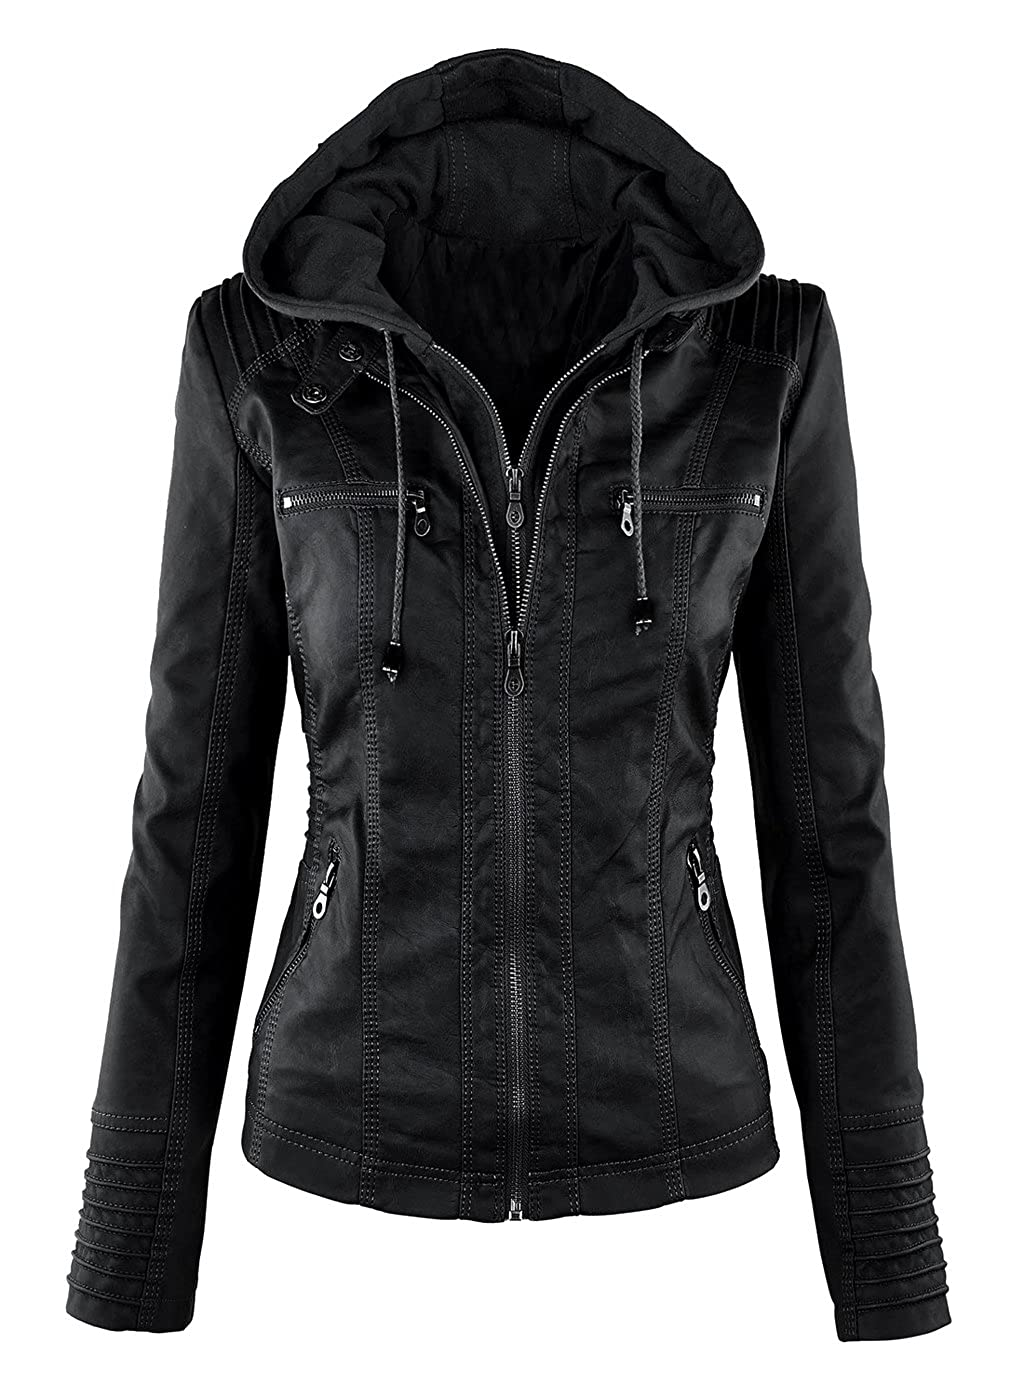 7c18337c Material: 100% Premium Faux leather with A1 Quality / 100% Polyester lining  | Brand New Jacket